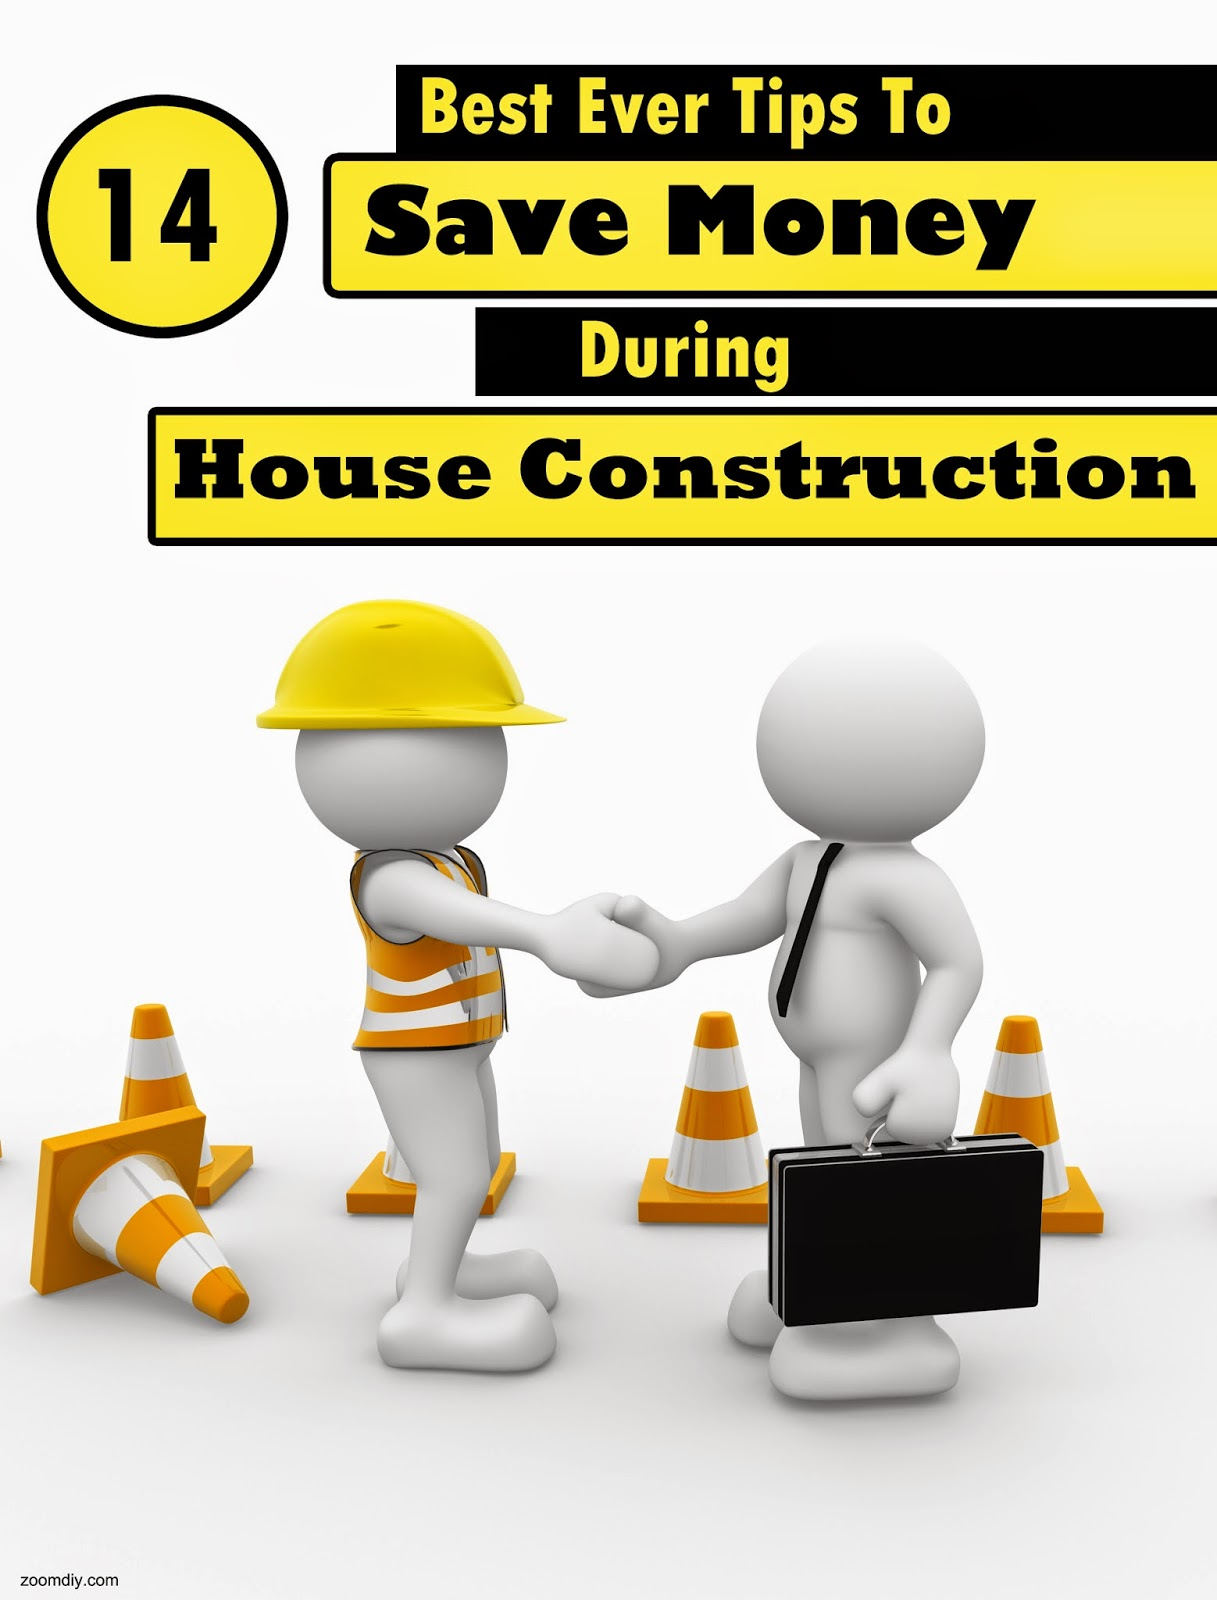 14 best ever tips to save money during house construction for Save money building a house